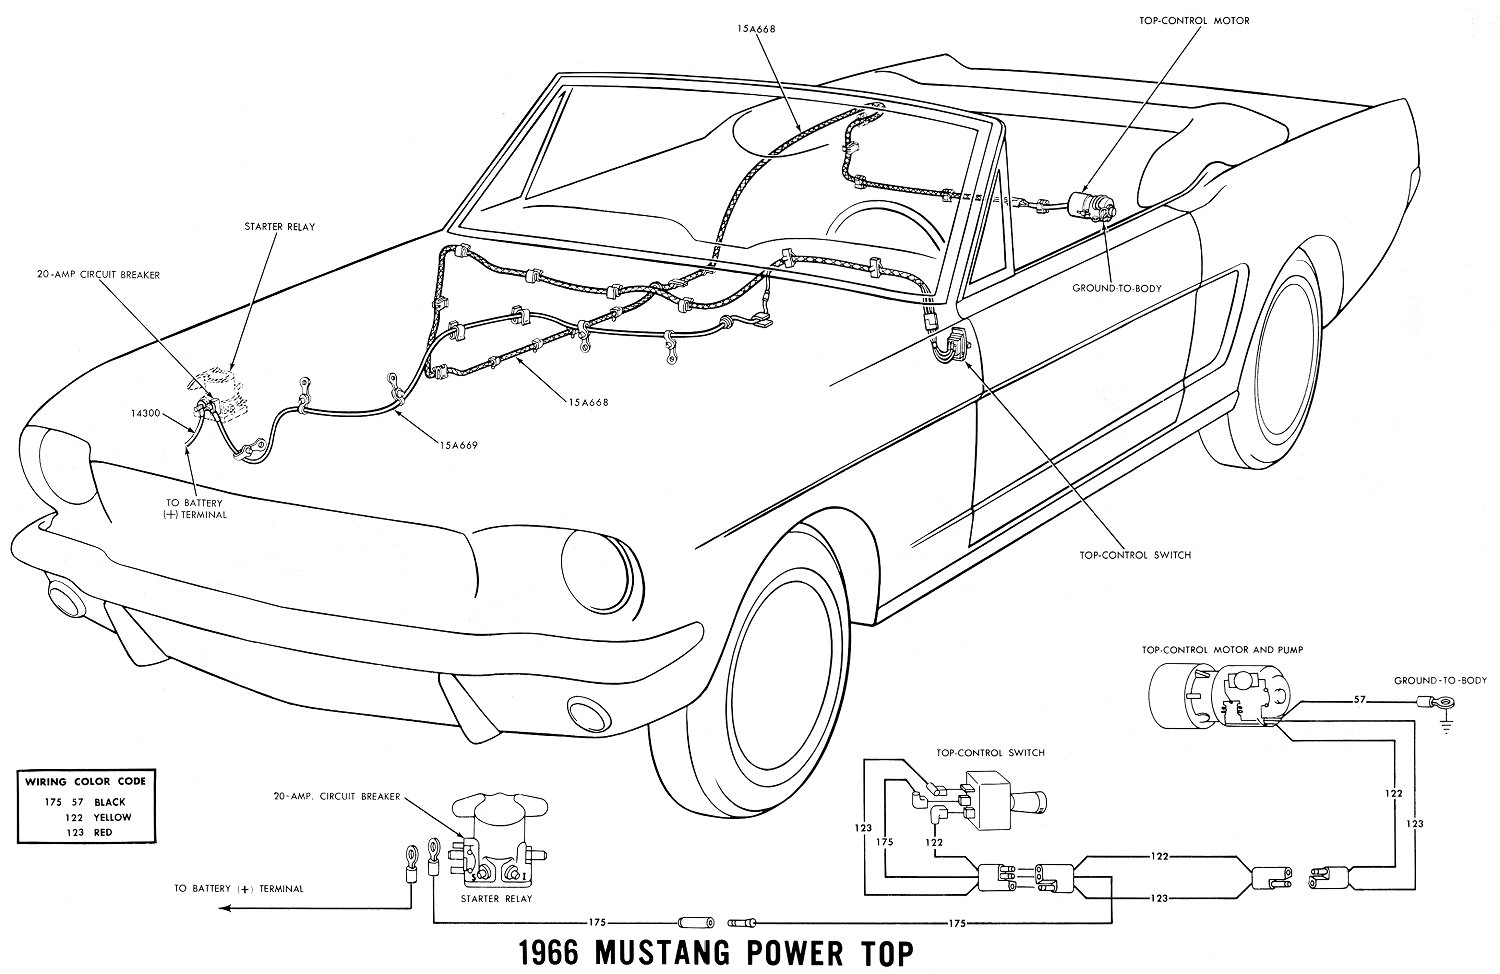 66 ford mustang wiring diagram with 1966 Mustang Wiring Diagrams on 70 Mustang Ignition Wiring Diagram in addition 1968 Mustang Wiring Diagram Vacuum Schematics besides 1964 Mustang Wiring Diagrams as well 60x09 Ford 250 1968 F250 Keeps Acting Battery Dead besides 1968 Mustang Wiring Diagram Vacuum Schematics.